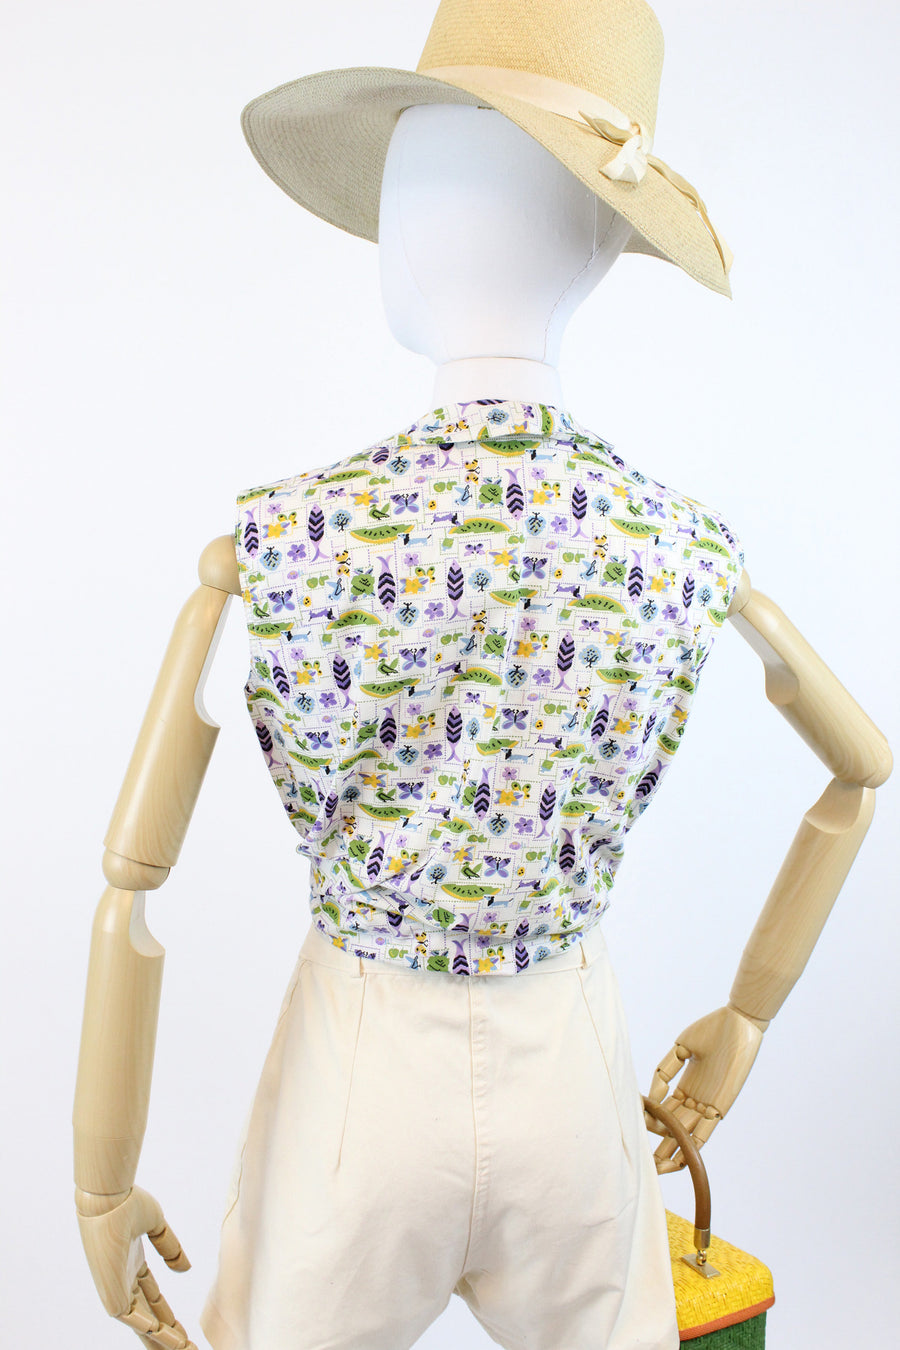 1960s birds and butterflies print blouse small | vintage cotton novelty print top